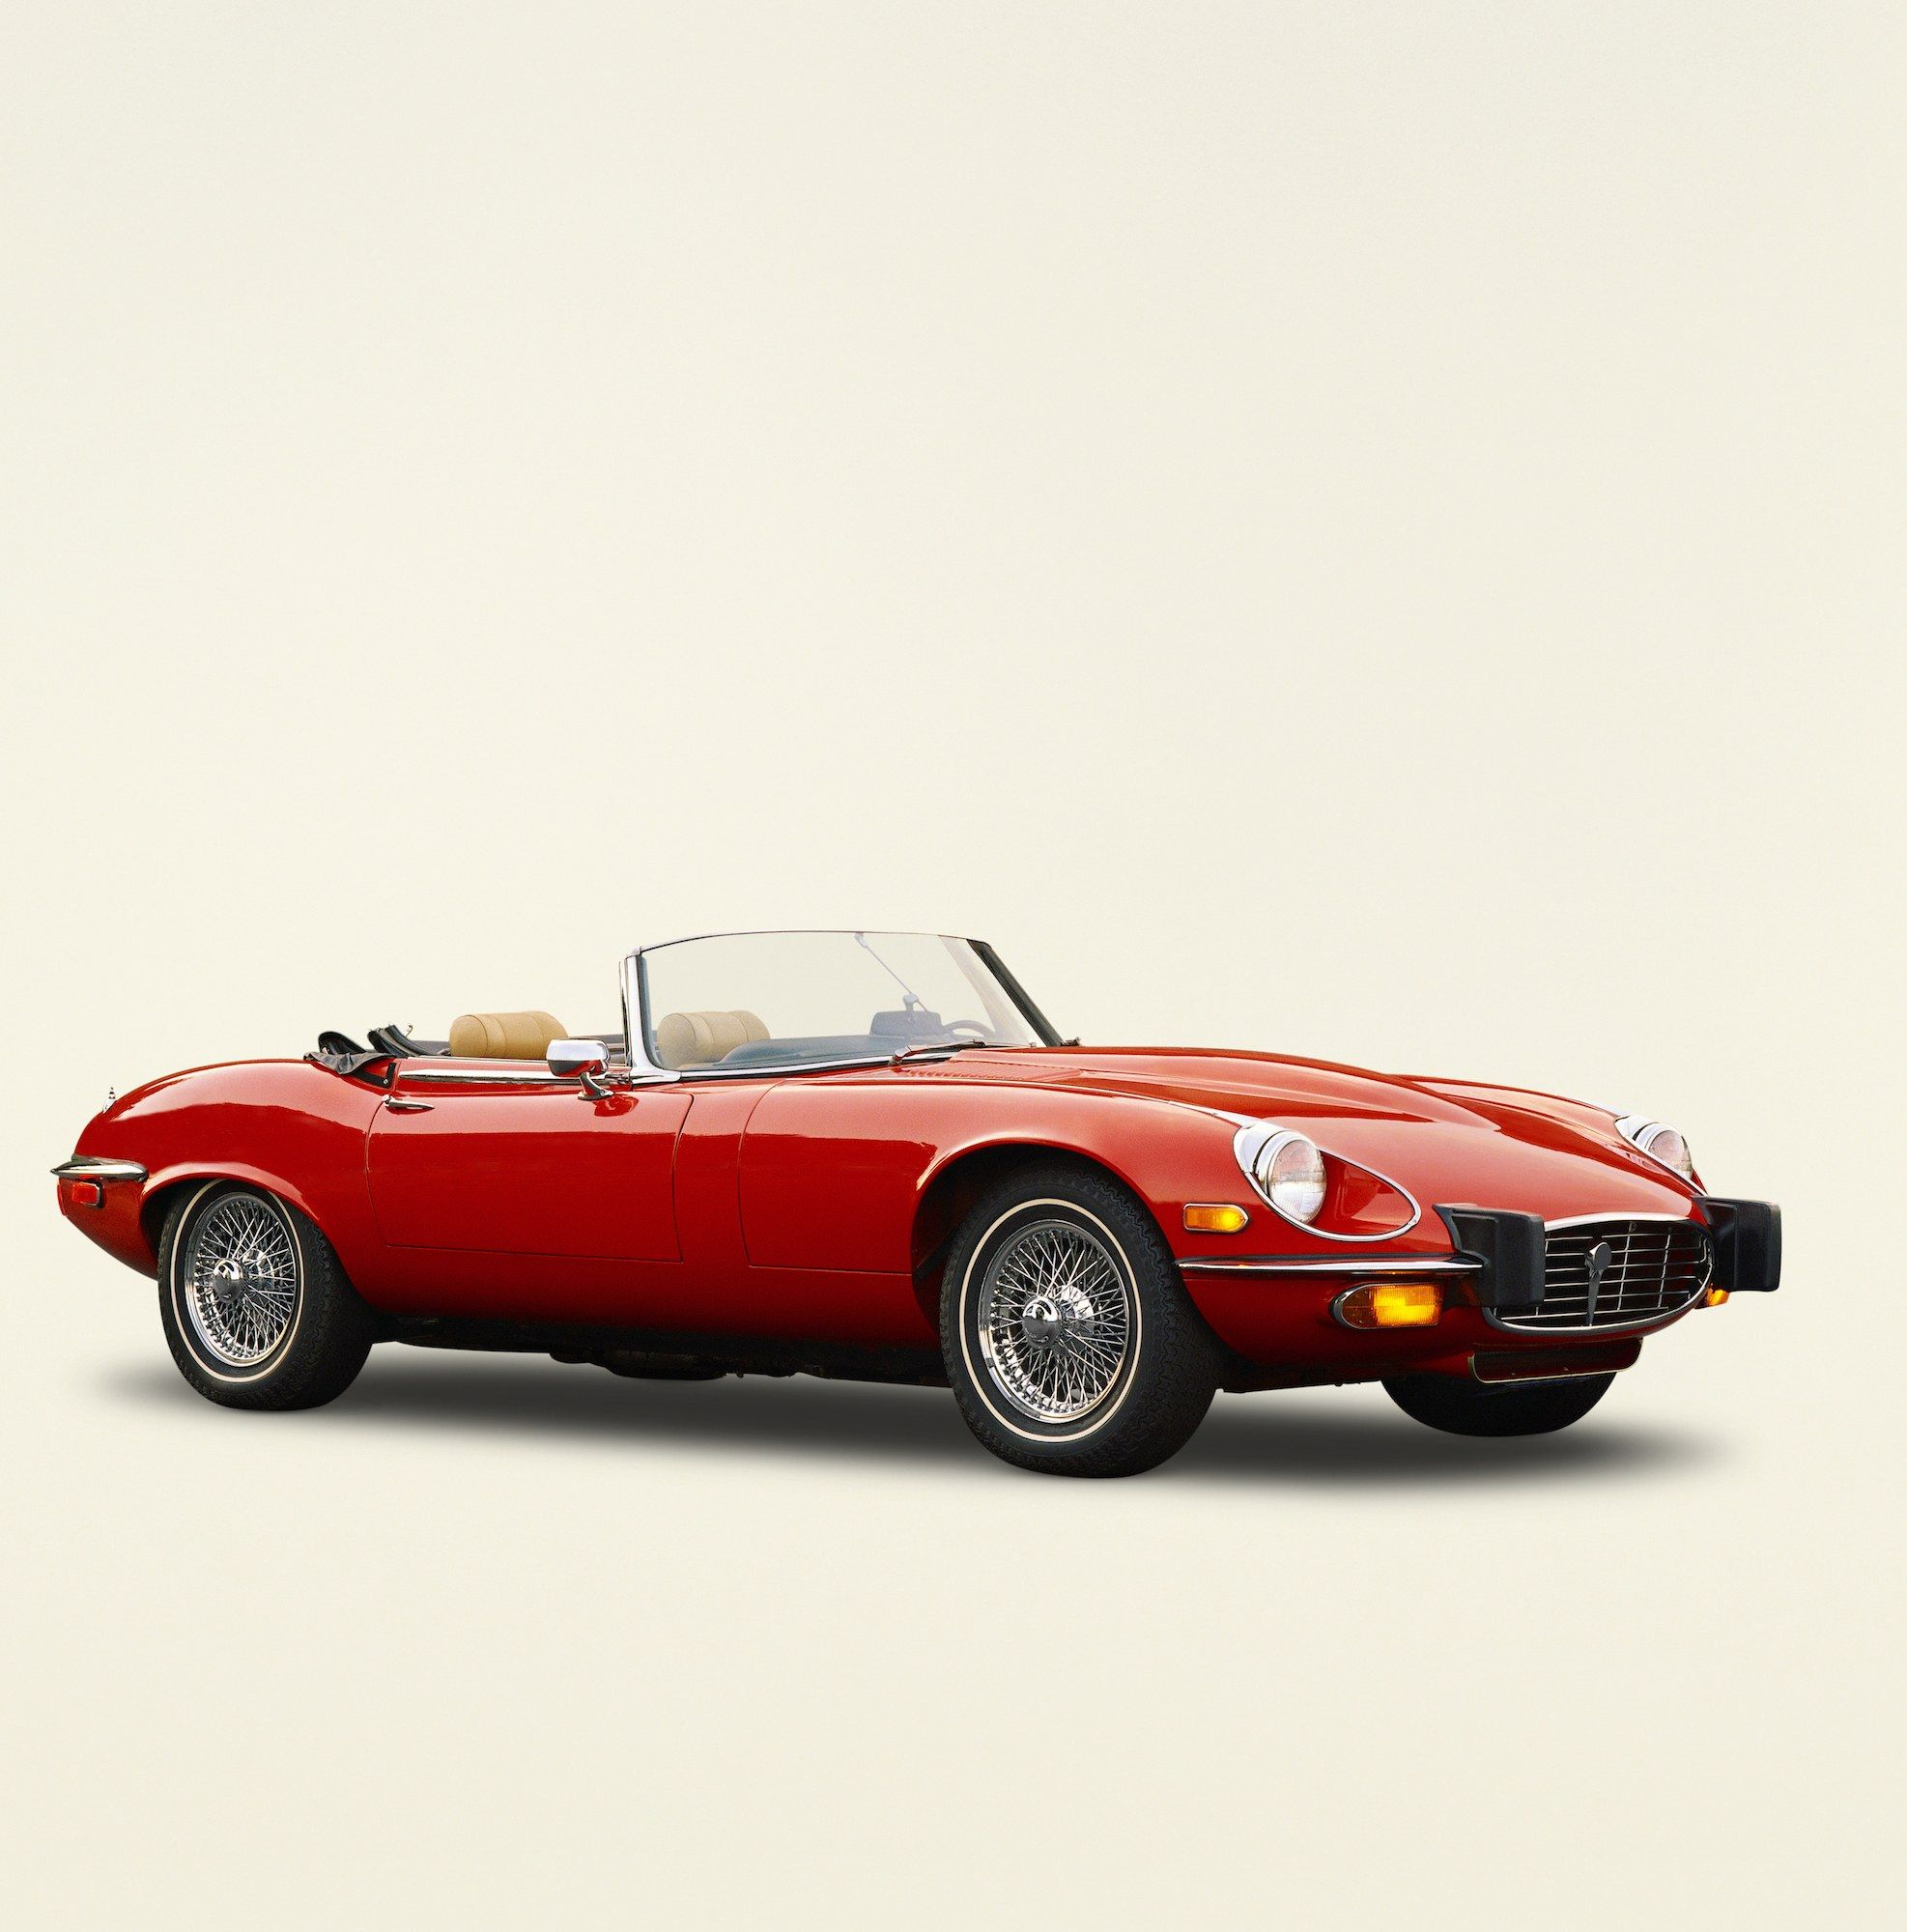 10 of the Best Convertibles in History   History photos, Convertible